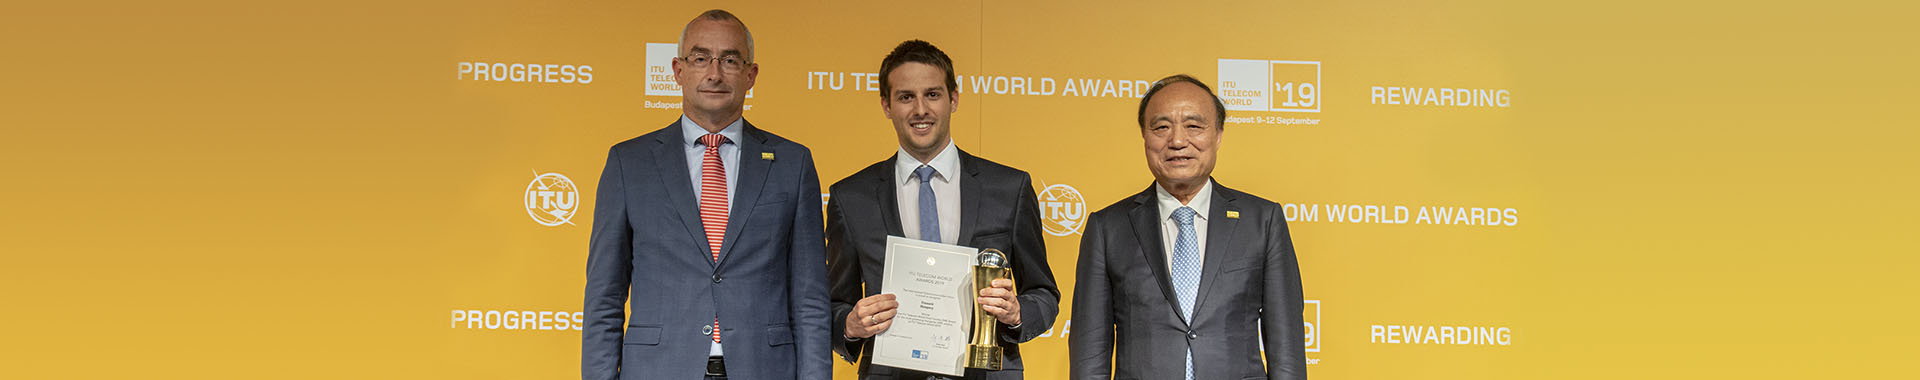 Tresorit wins ITU Telecom World Award